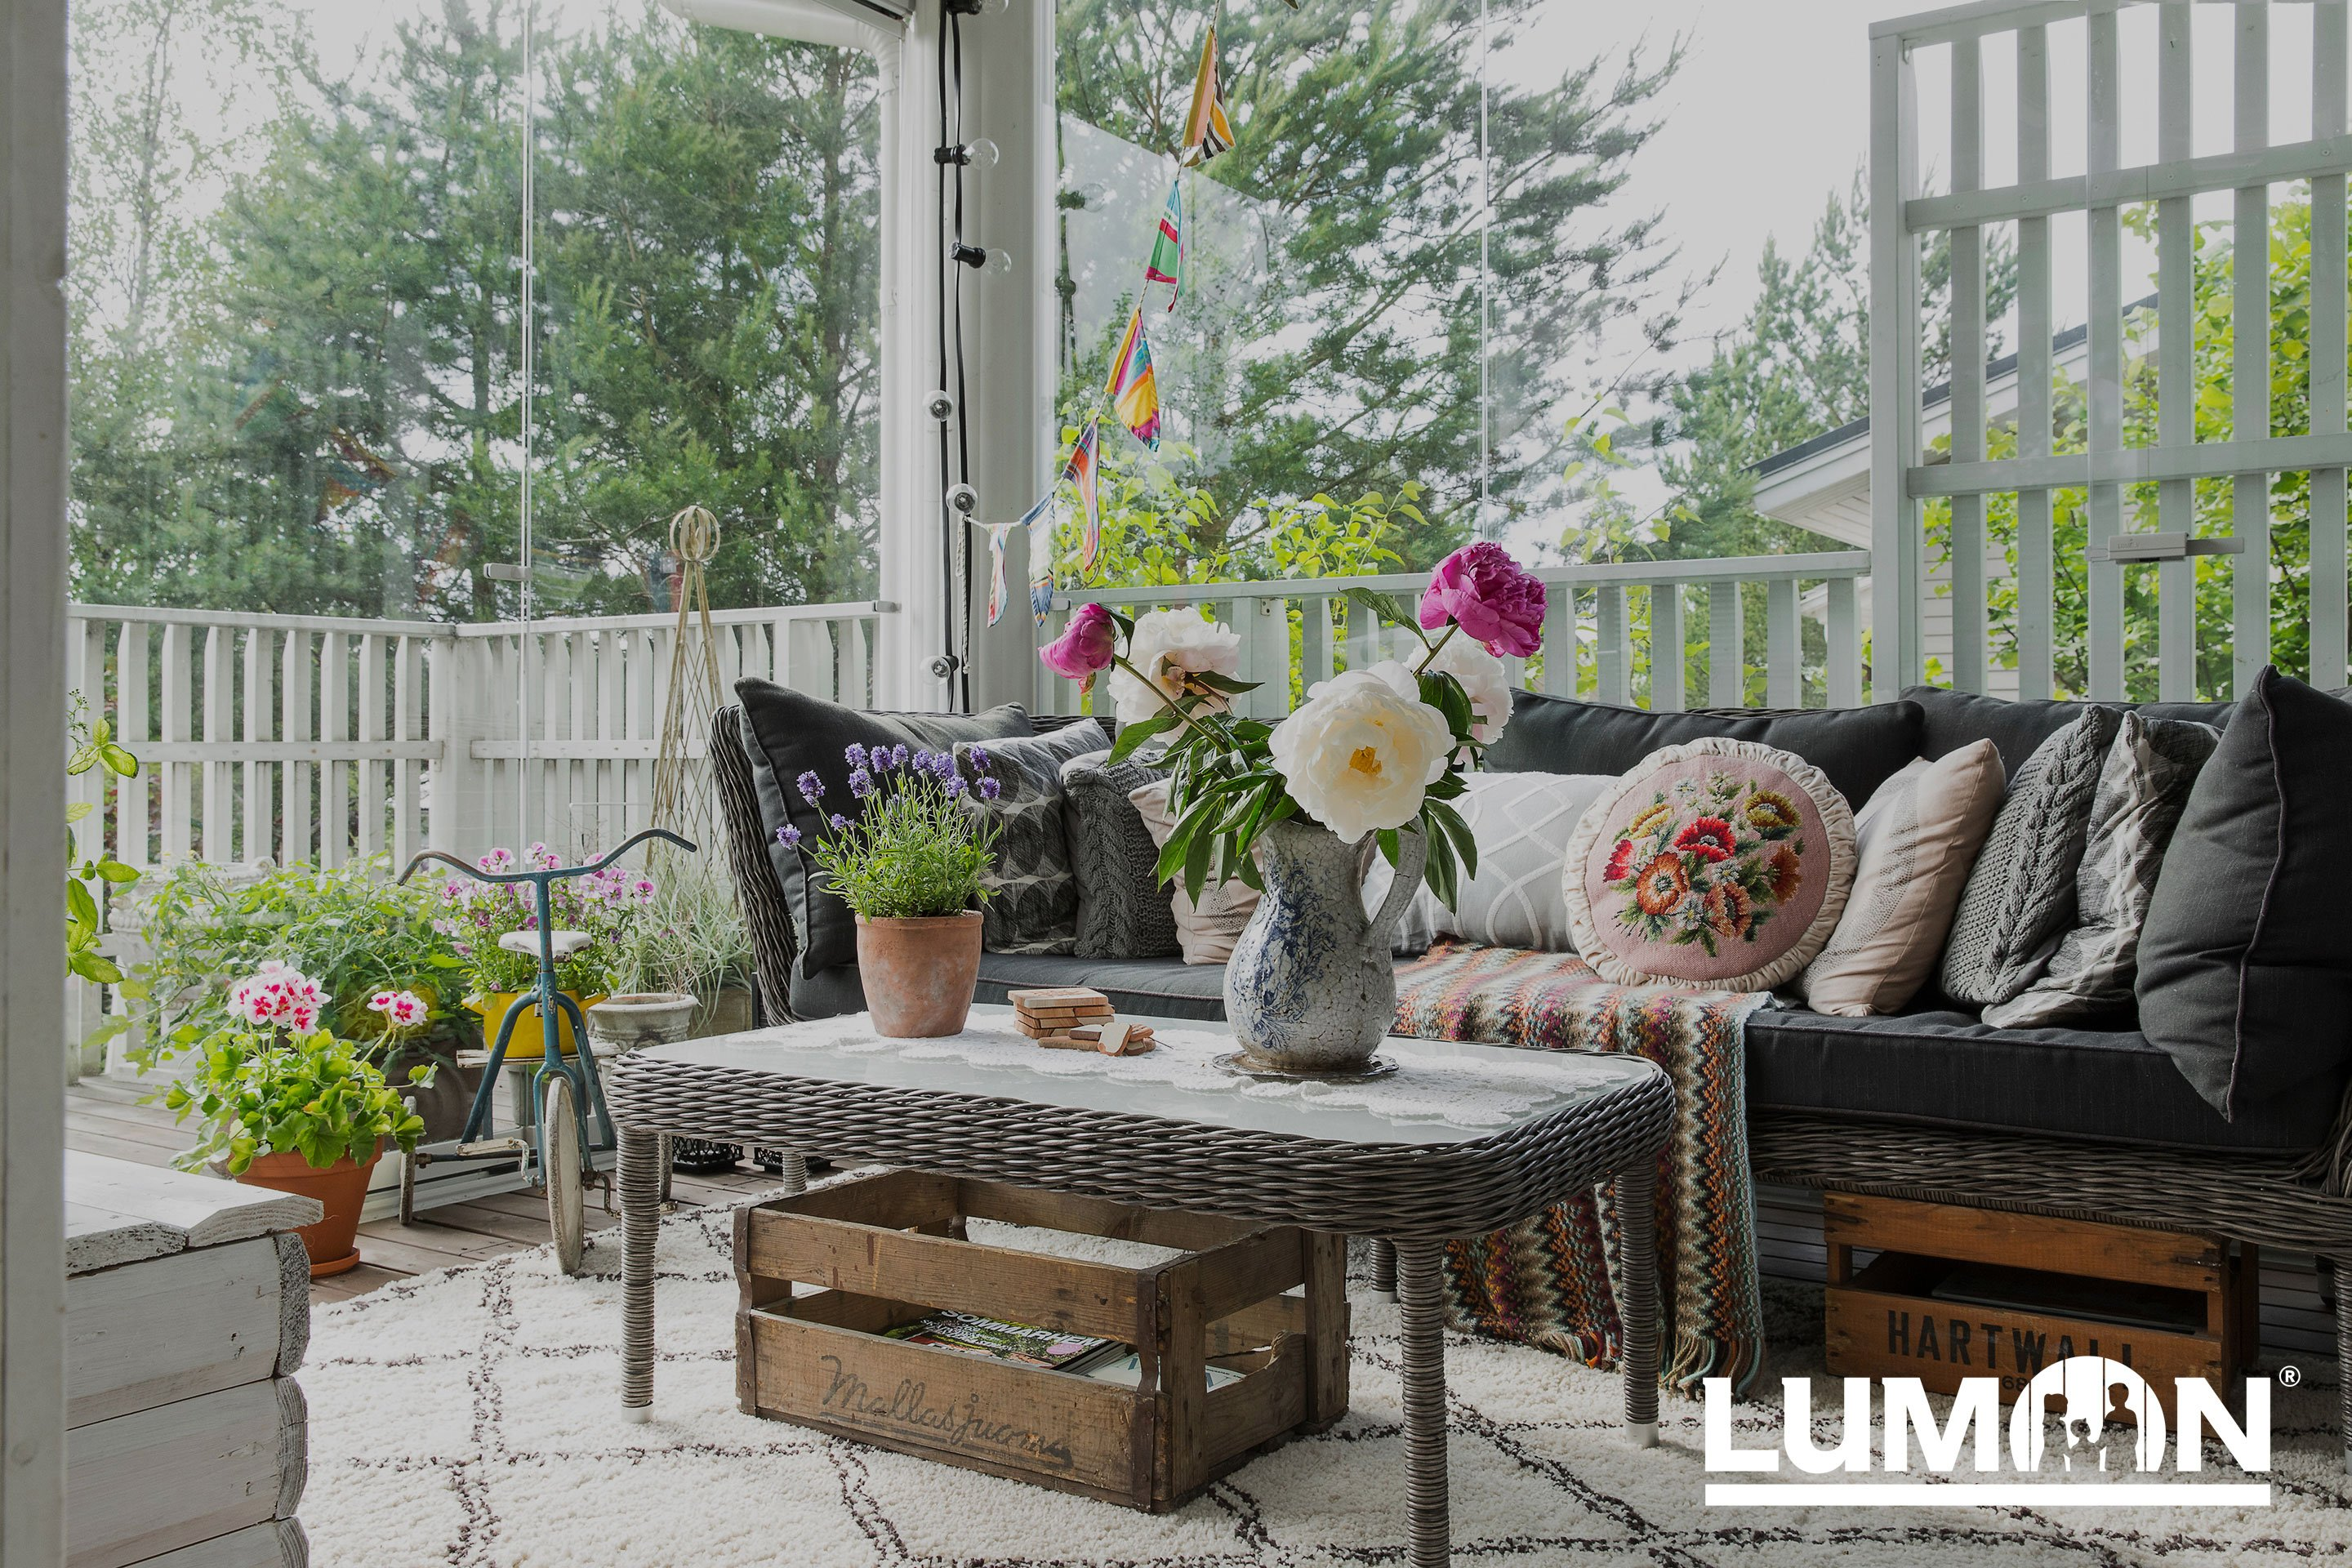 lumon canada, retractable glass sunroom, sunroom hamilton, sunroom toronto, sunroom GTA, sunroom mississauga, sunroom stoney creek, sunroom kitchener, sunroom cambridge